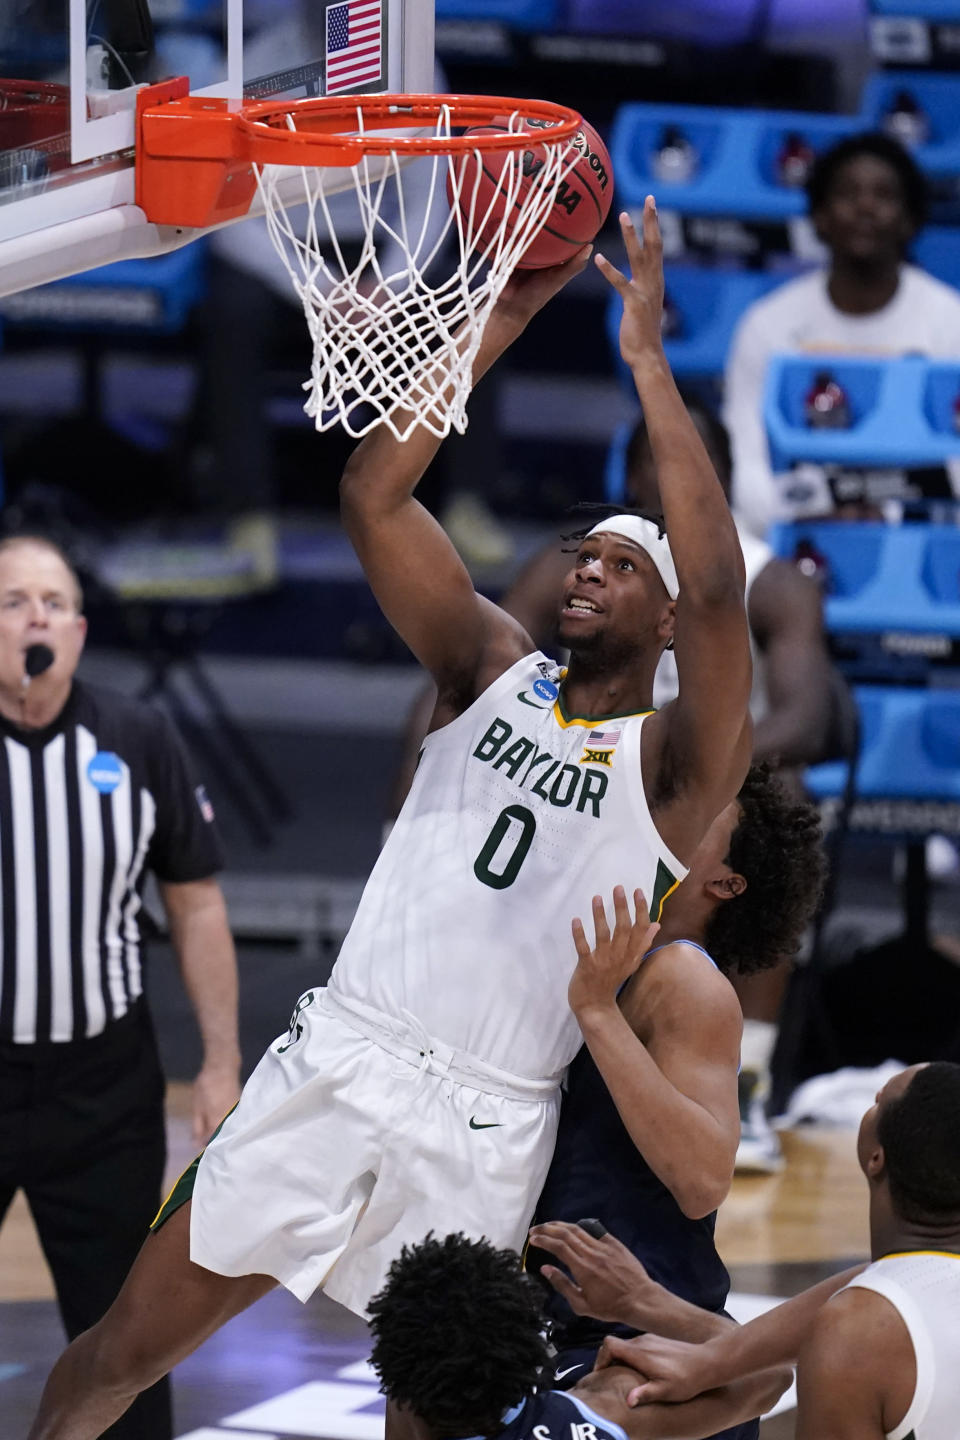 FILE - Baylor forward Flo Thamba (0) shoots against Villanova in the second half of a Sweet 16 game in the NCAA men's college basketball tournament at Hinkle Fieldhouse in Indianapolis, in this Saturday, March 27, 2021, file photo. All-American junior Jared Butler and his backcourt mates Davion Mitchell and MaCio Teague pretty much get all of the attention for the top-seeded Bears (26-2), who play a former Southwest Conference rival in the first national semifinal game Saturday. But those guards know they wouldn't be where they are now without the often interchangeable 245-pound post players _ the 6-foot-10 Thamba and and 6-8 Tchamwa Tchatchoua. (AP Photo/Michael Conroy, File)